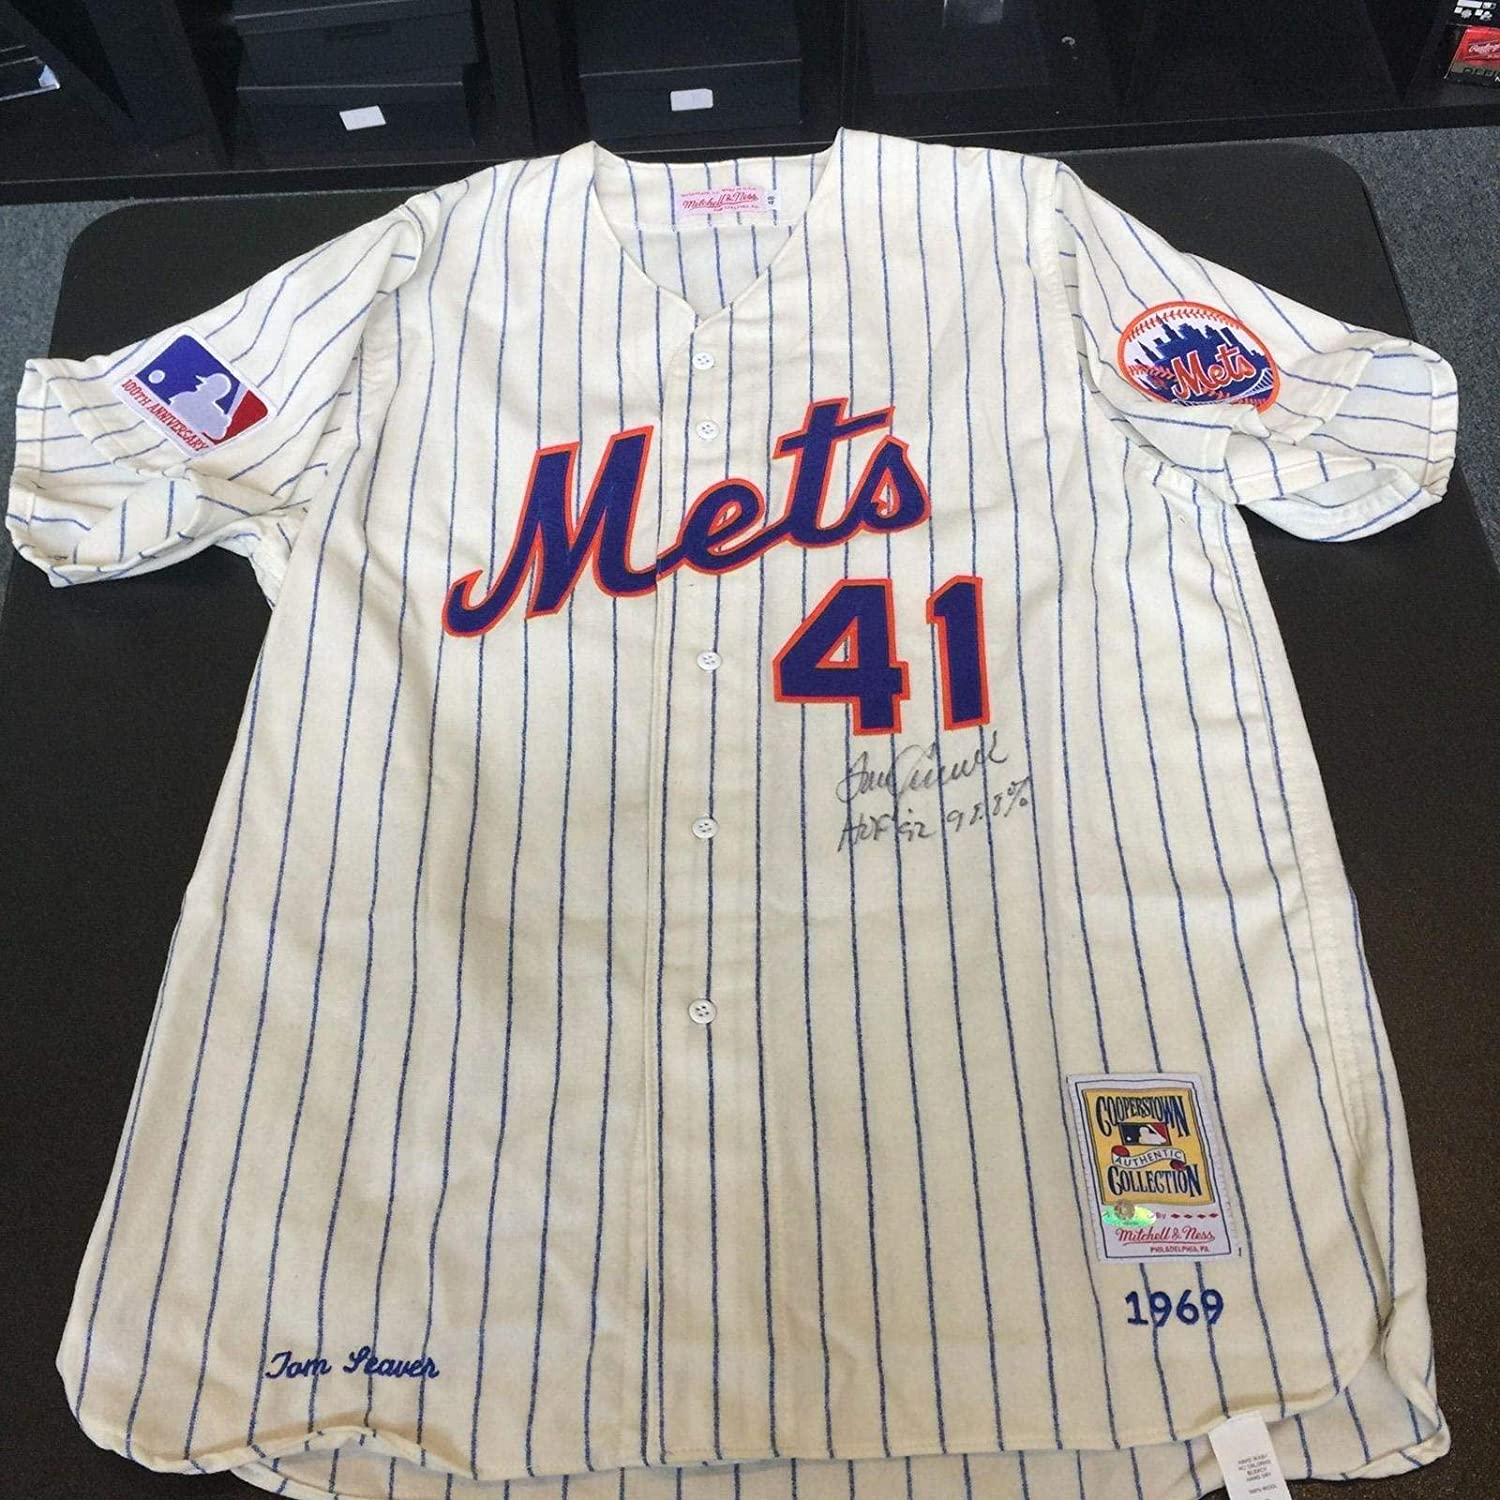 new arrival 34356 0c850 Tom Seaver Autographed Jersey - Beautiful HOF 92 98 8% Votes ...